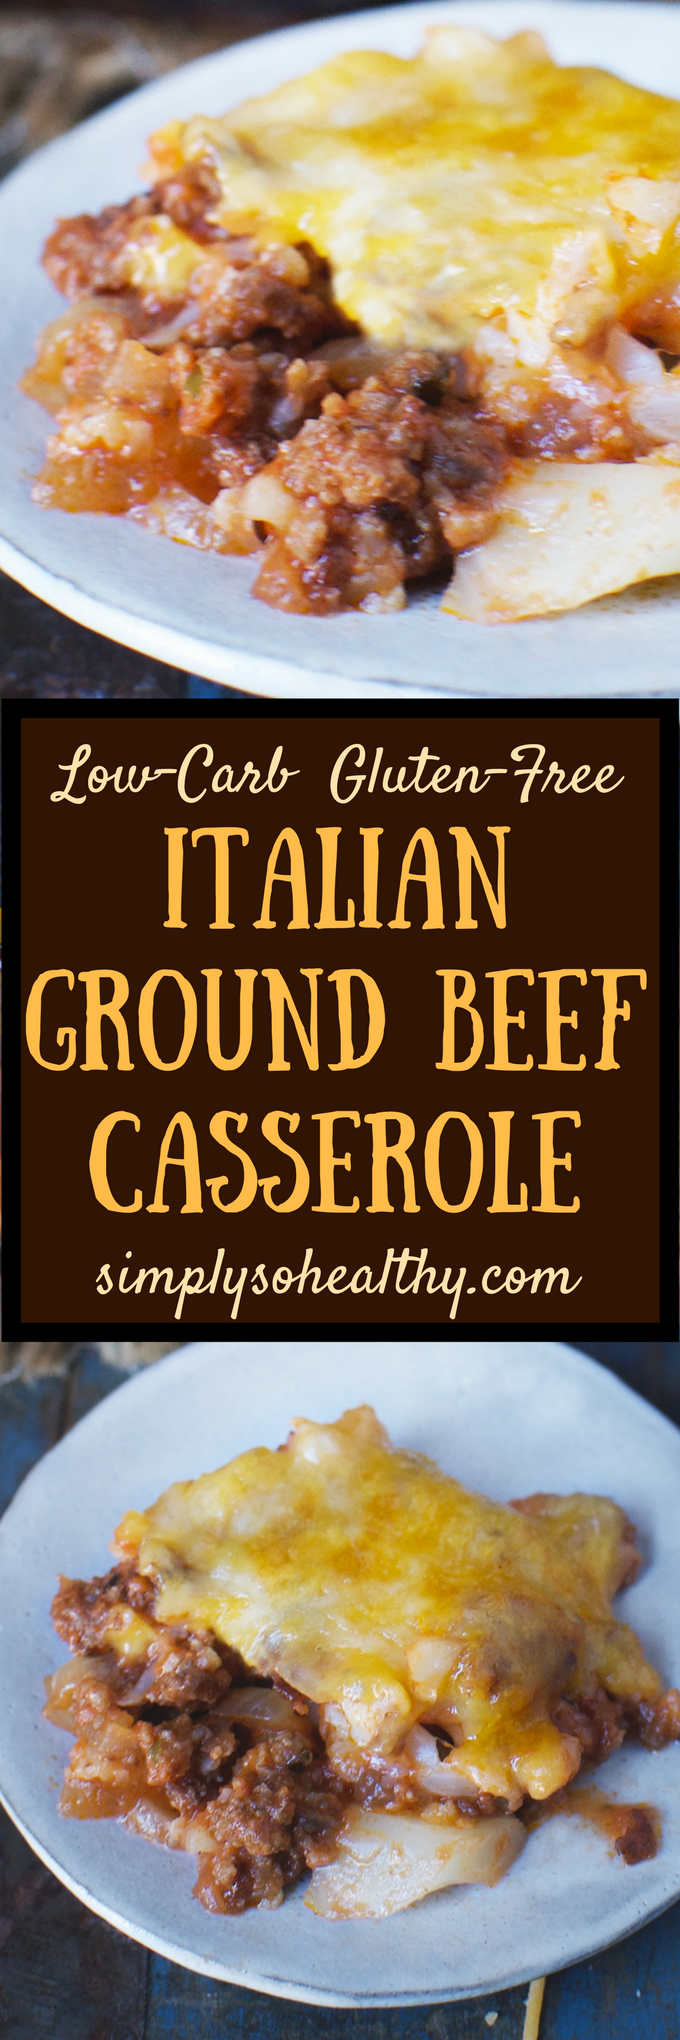 Keto Friendly Italian Ground Beef Casserole Recipe Simply So Healthy Recipe Ground Beef Casserole Recipes Beef Casserole Recipes Ground Beef Casserole